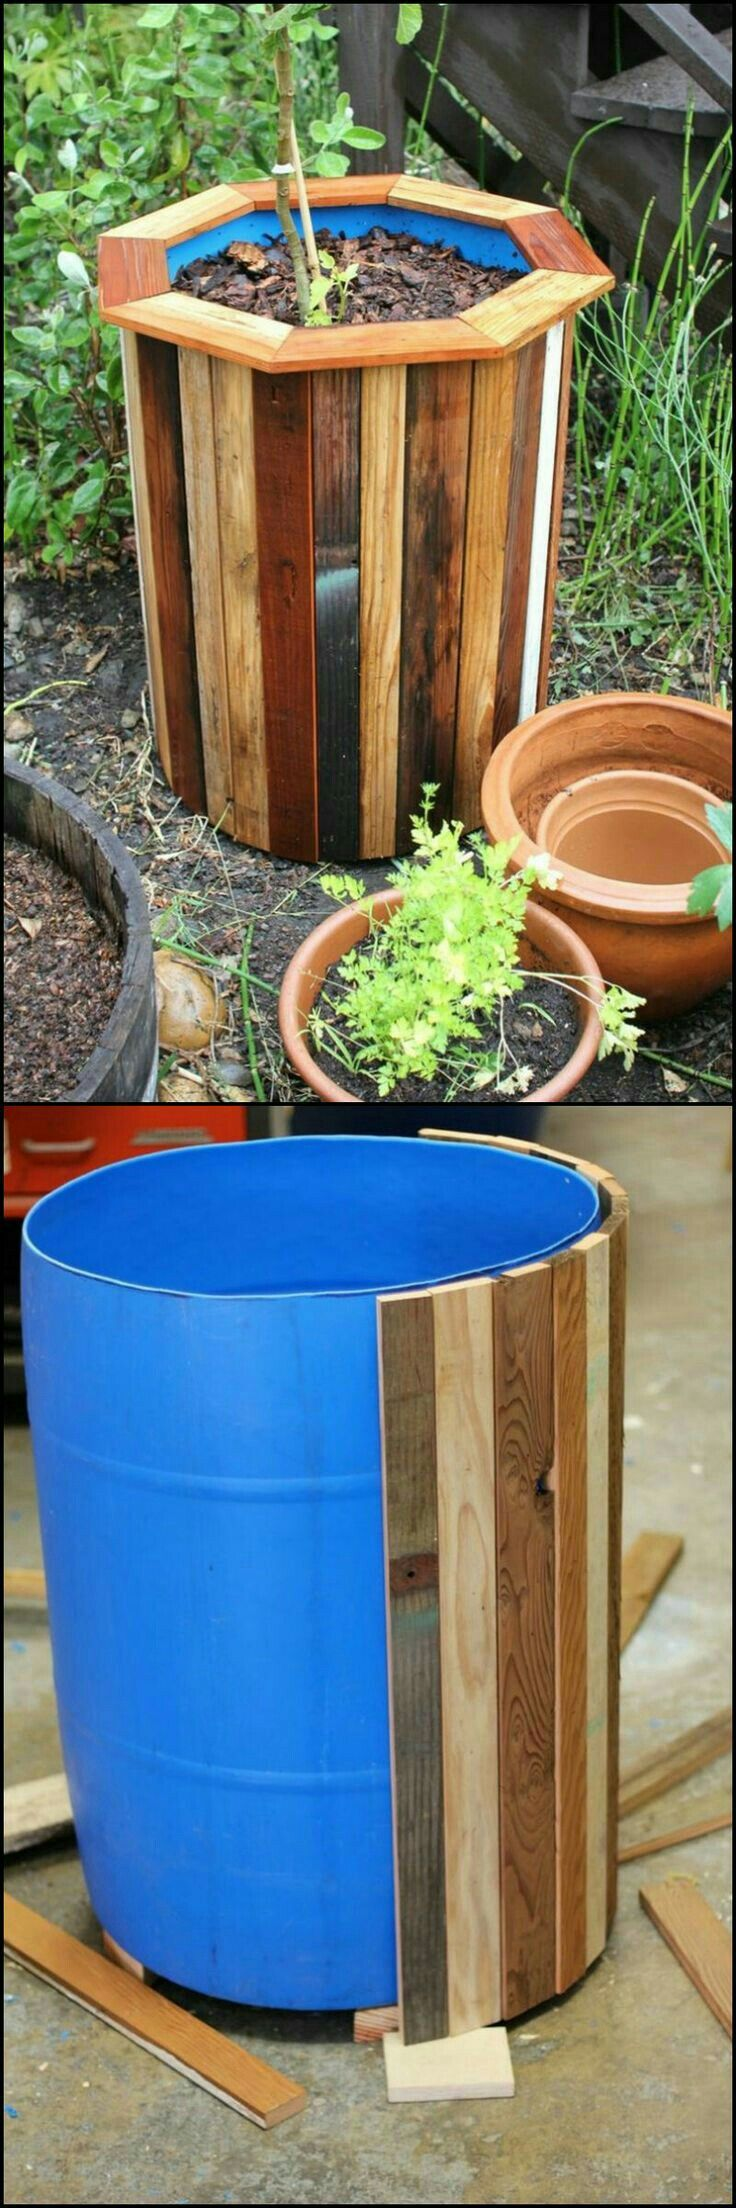 Use plastic barrels and cover in wood for an expensive planter look. Big size, little price!